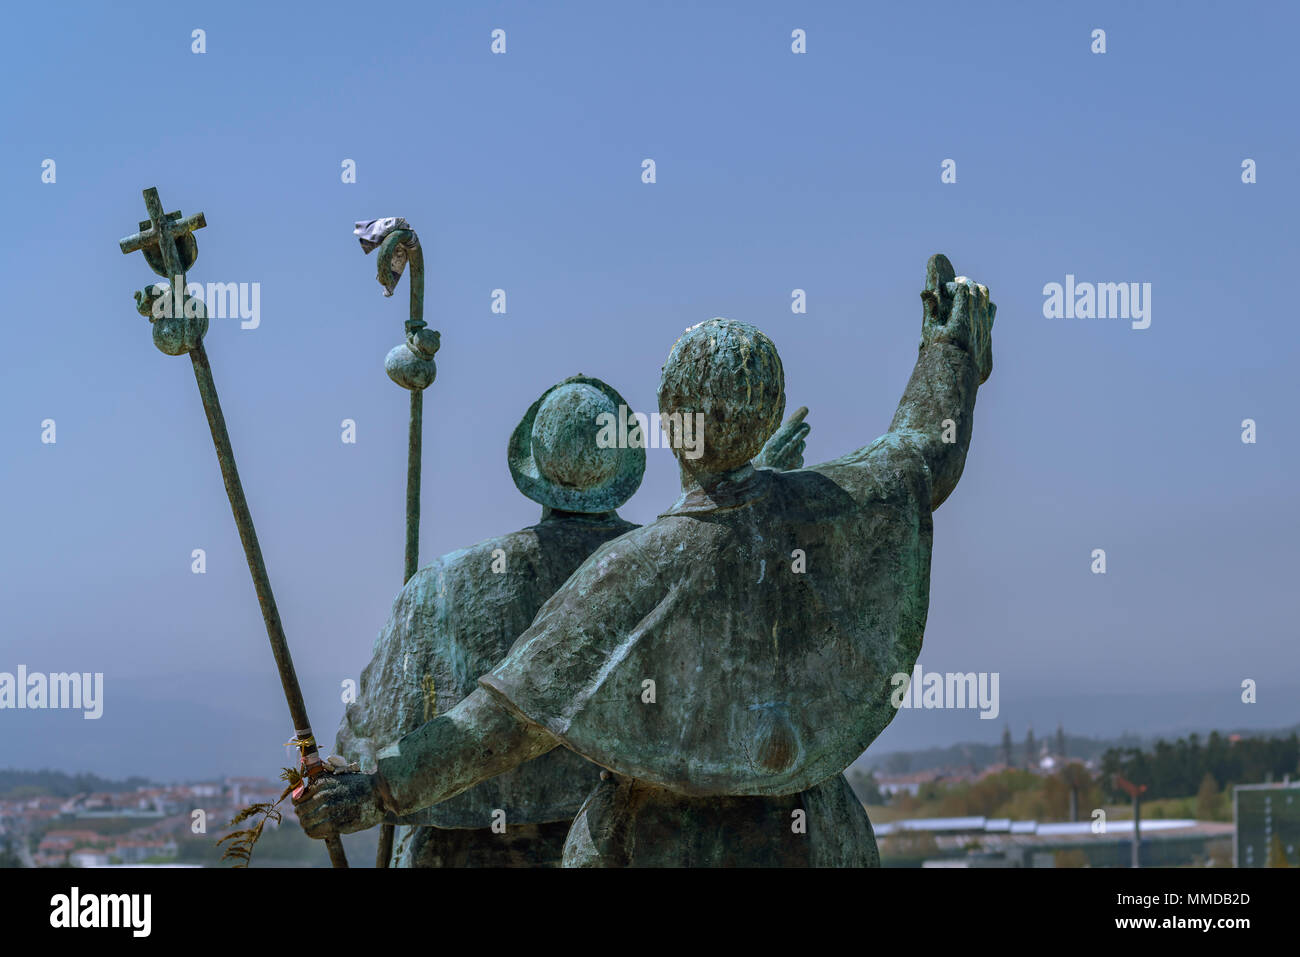 Sculpture of two pilgrims happy to see Santiago de Compostela from the Monte do Gozo at the end of The Way of St James - Stock Image